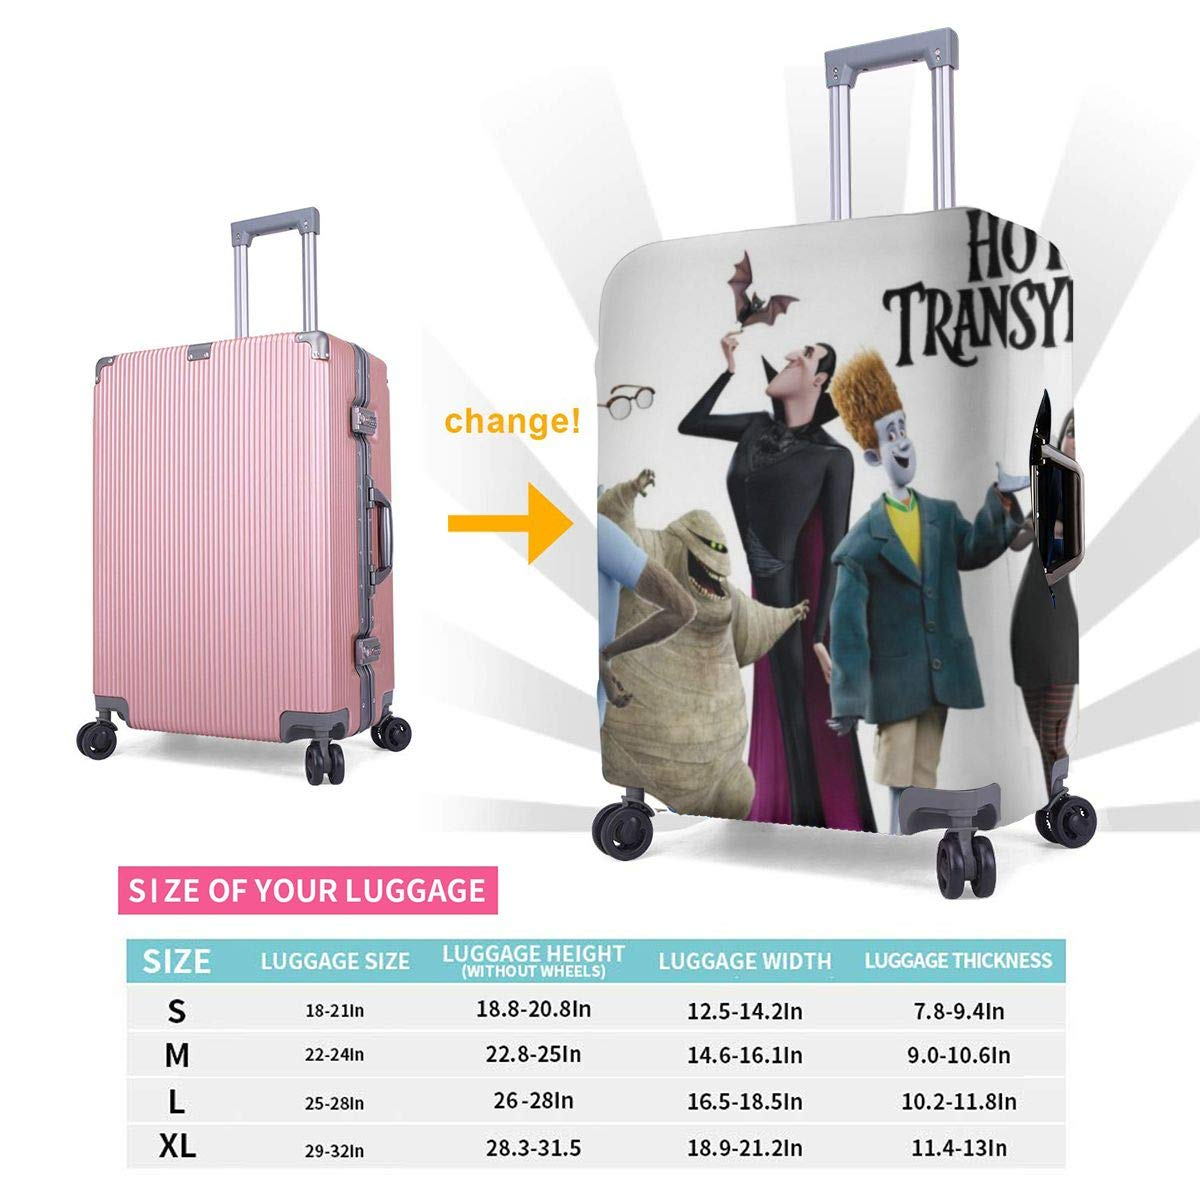 Hotel Transylvania Suitcase Protector Travel Luggage Cover Fit